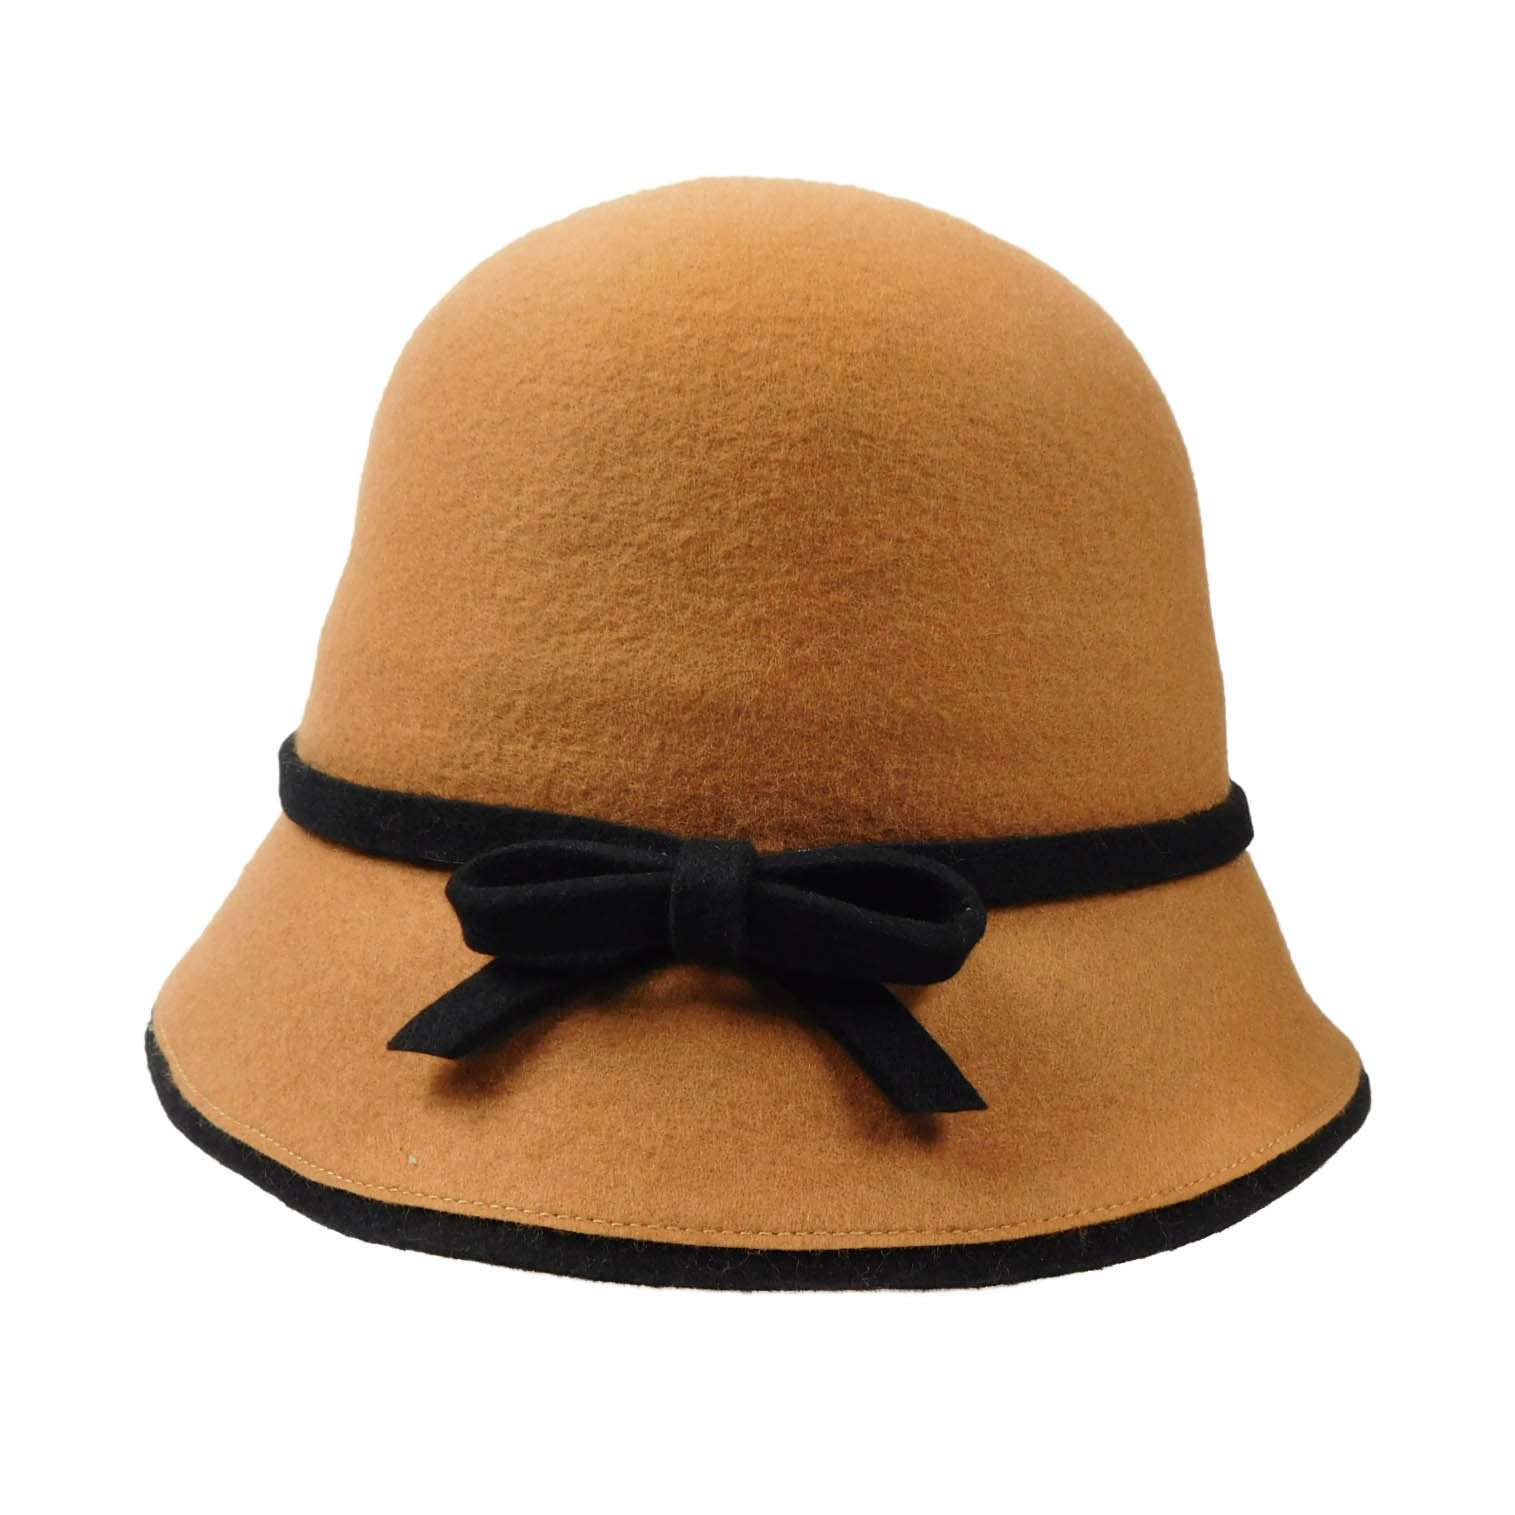 Wool Felt Cloche/Bucket Hat - SetarTrading Hats